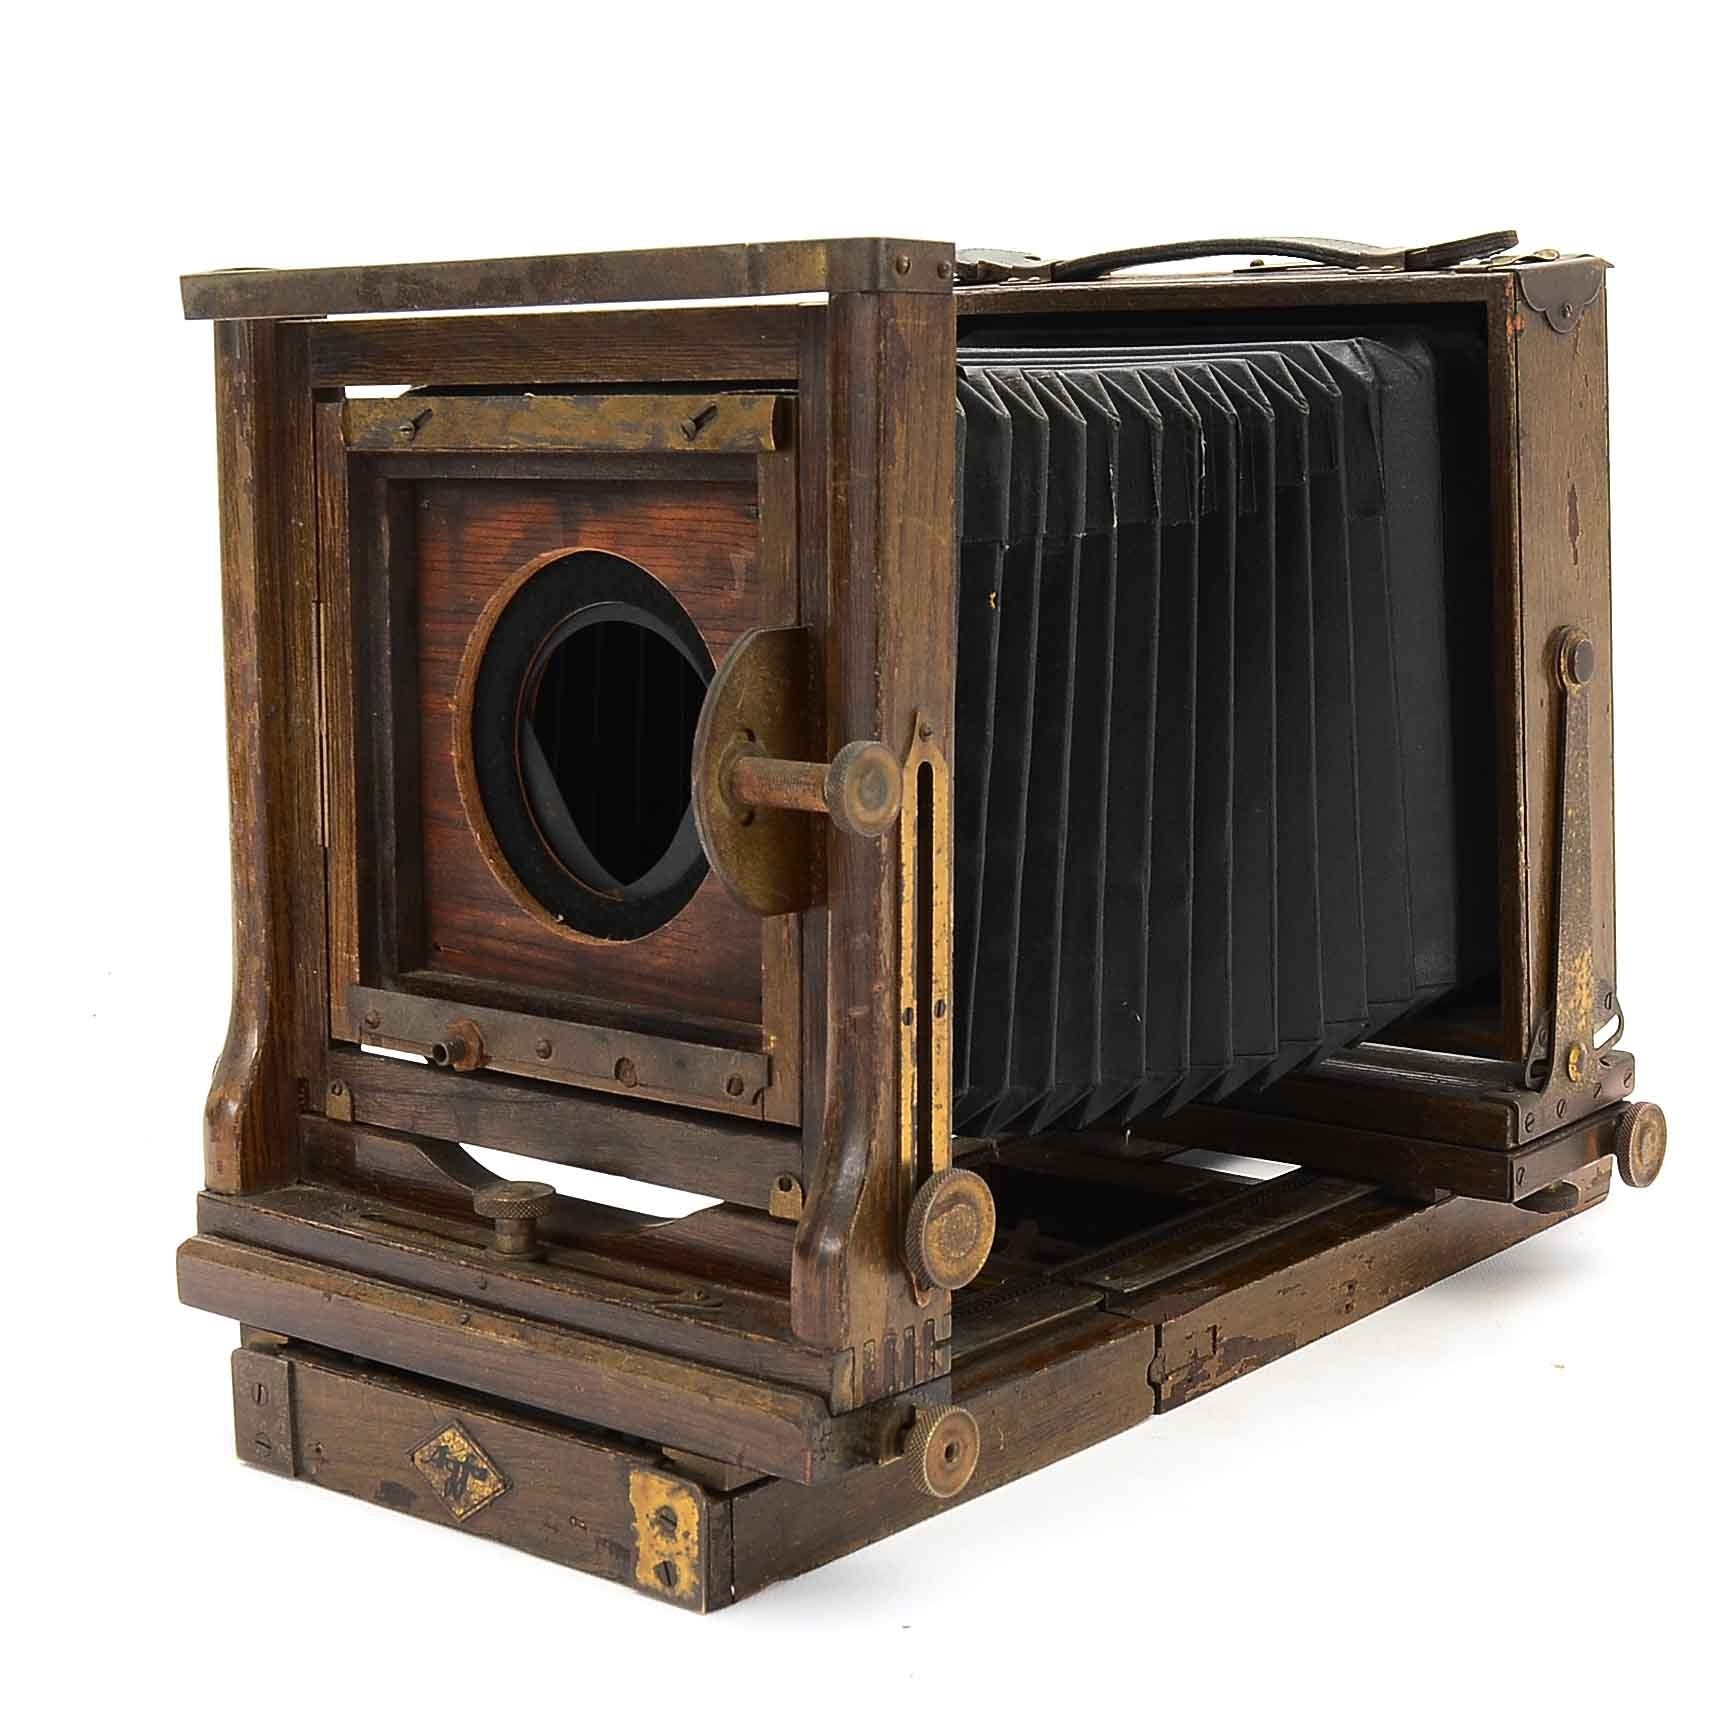 Vintage Agfa Ansco 5x7 View Camera Body with Accessories